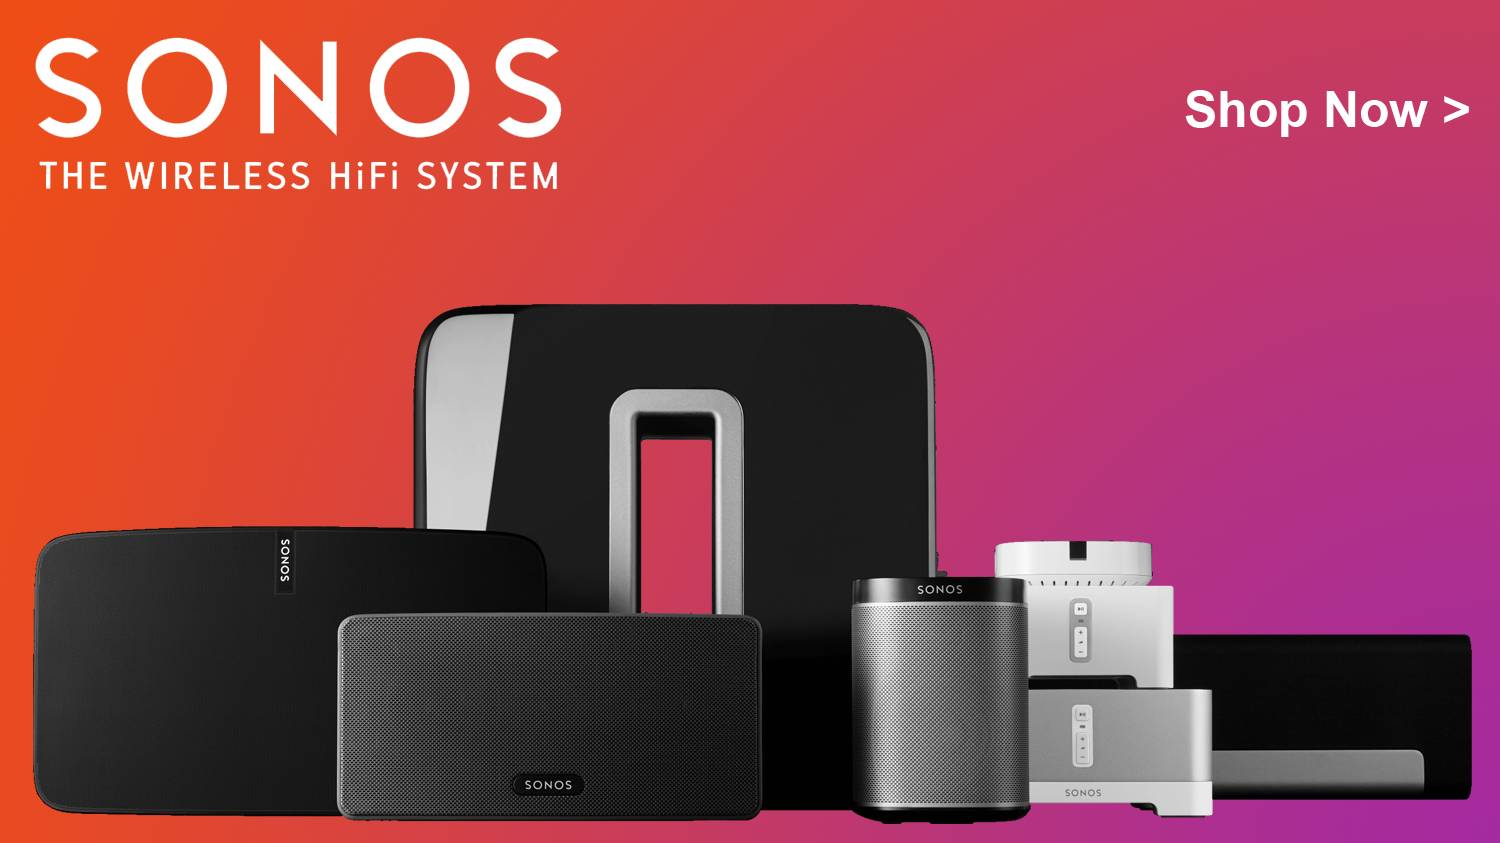 Sonos The Wireless Hi-Fi System